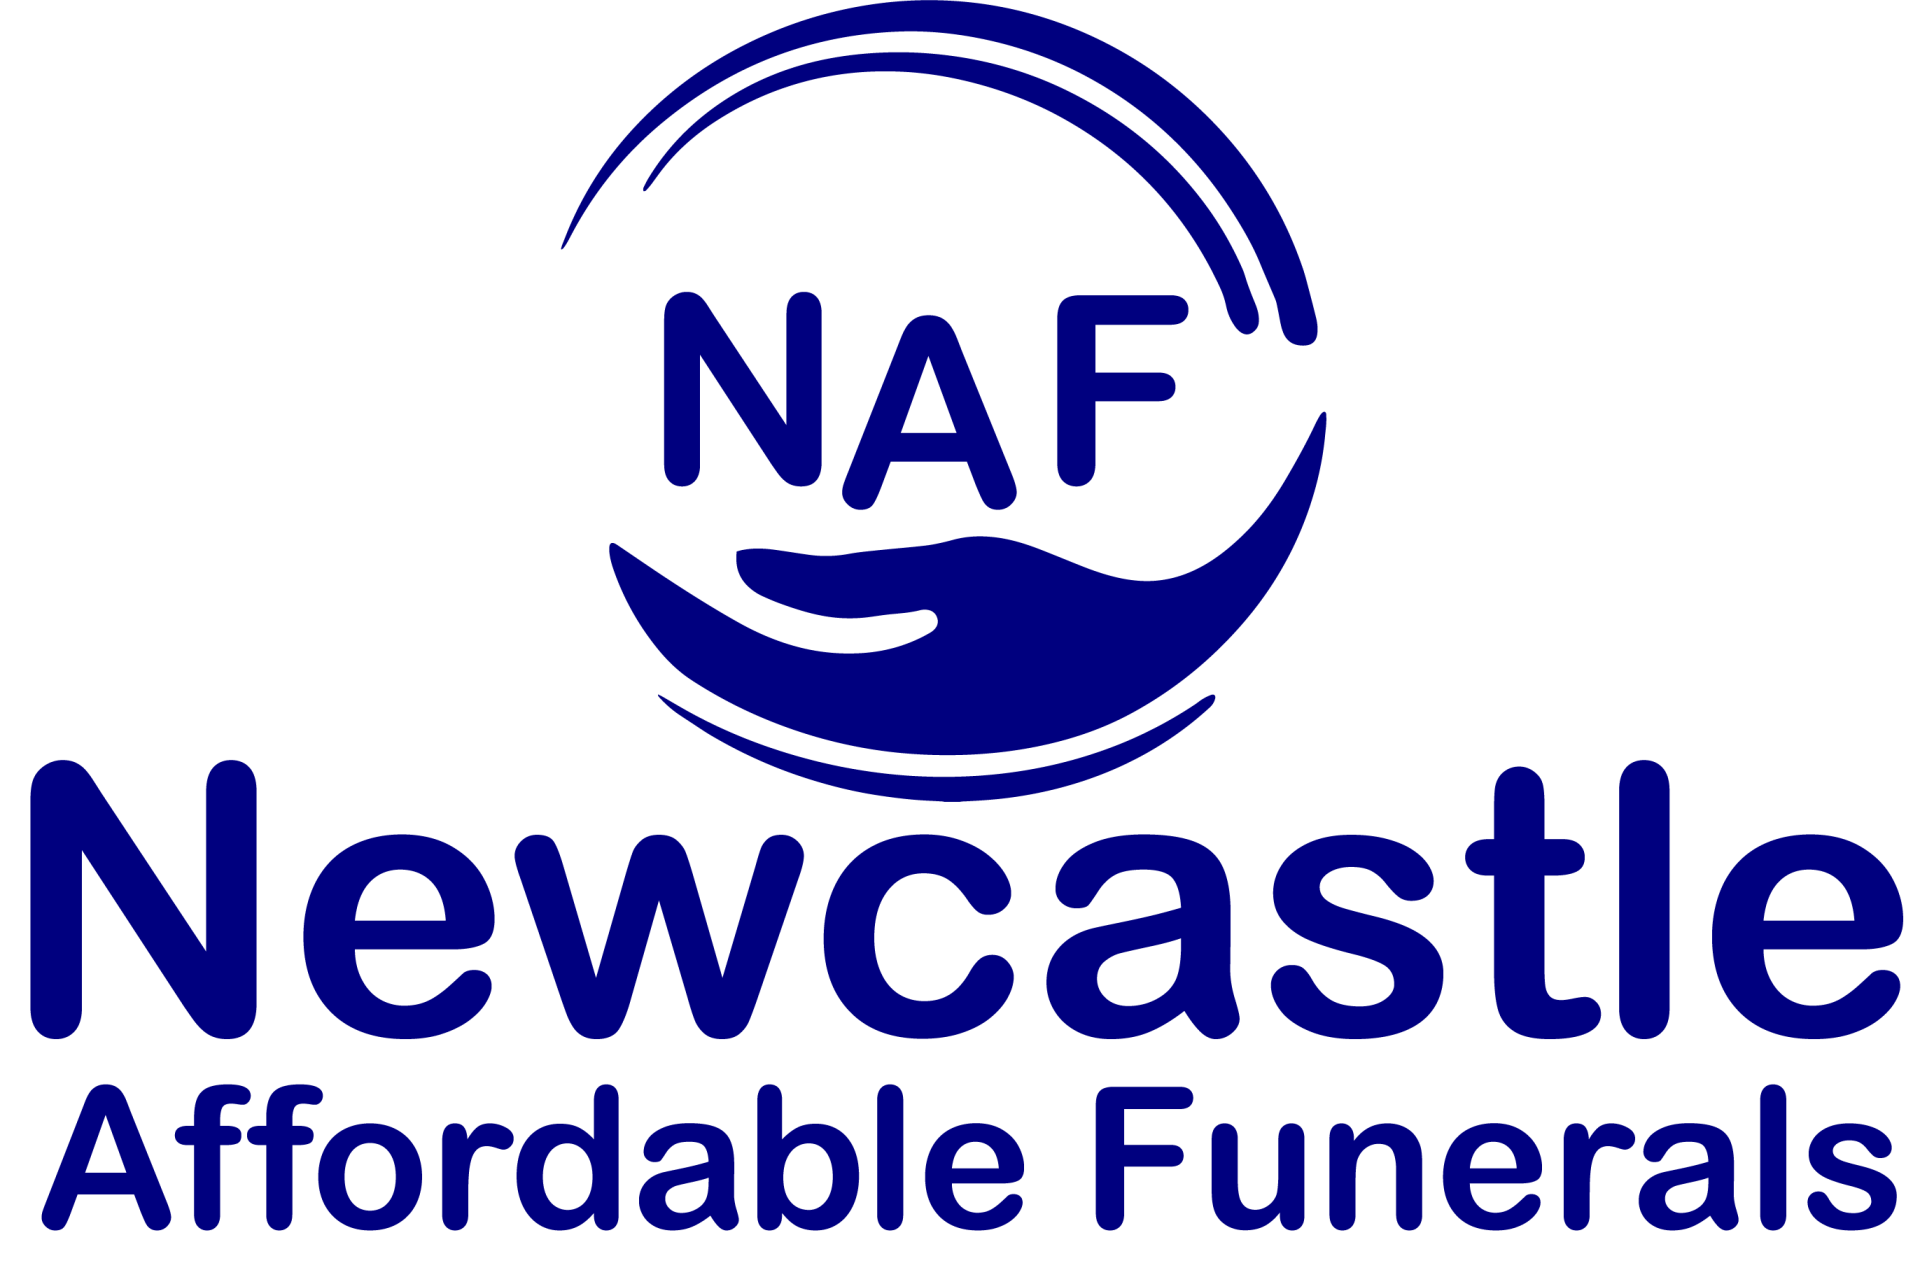 Newcastle Affordable Funerals | Pre Paid Funeral Info